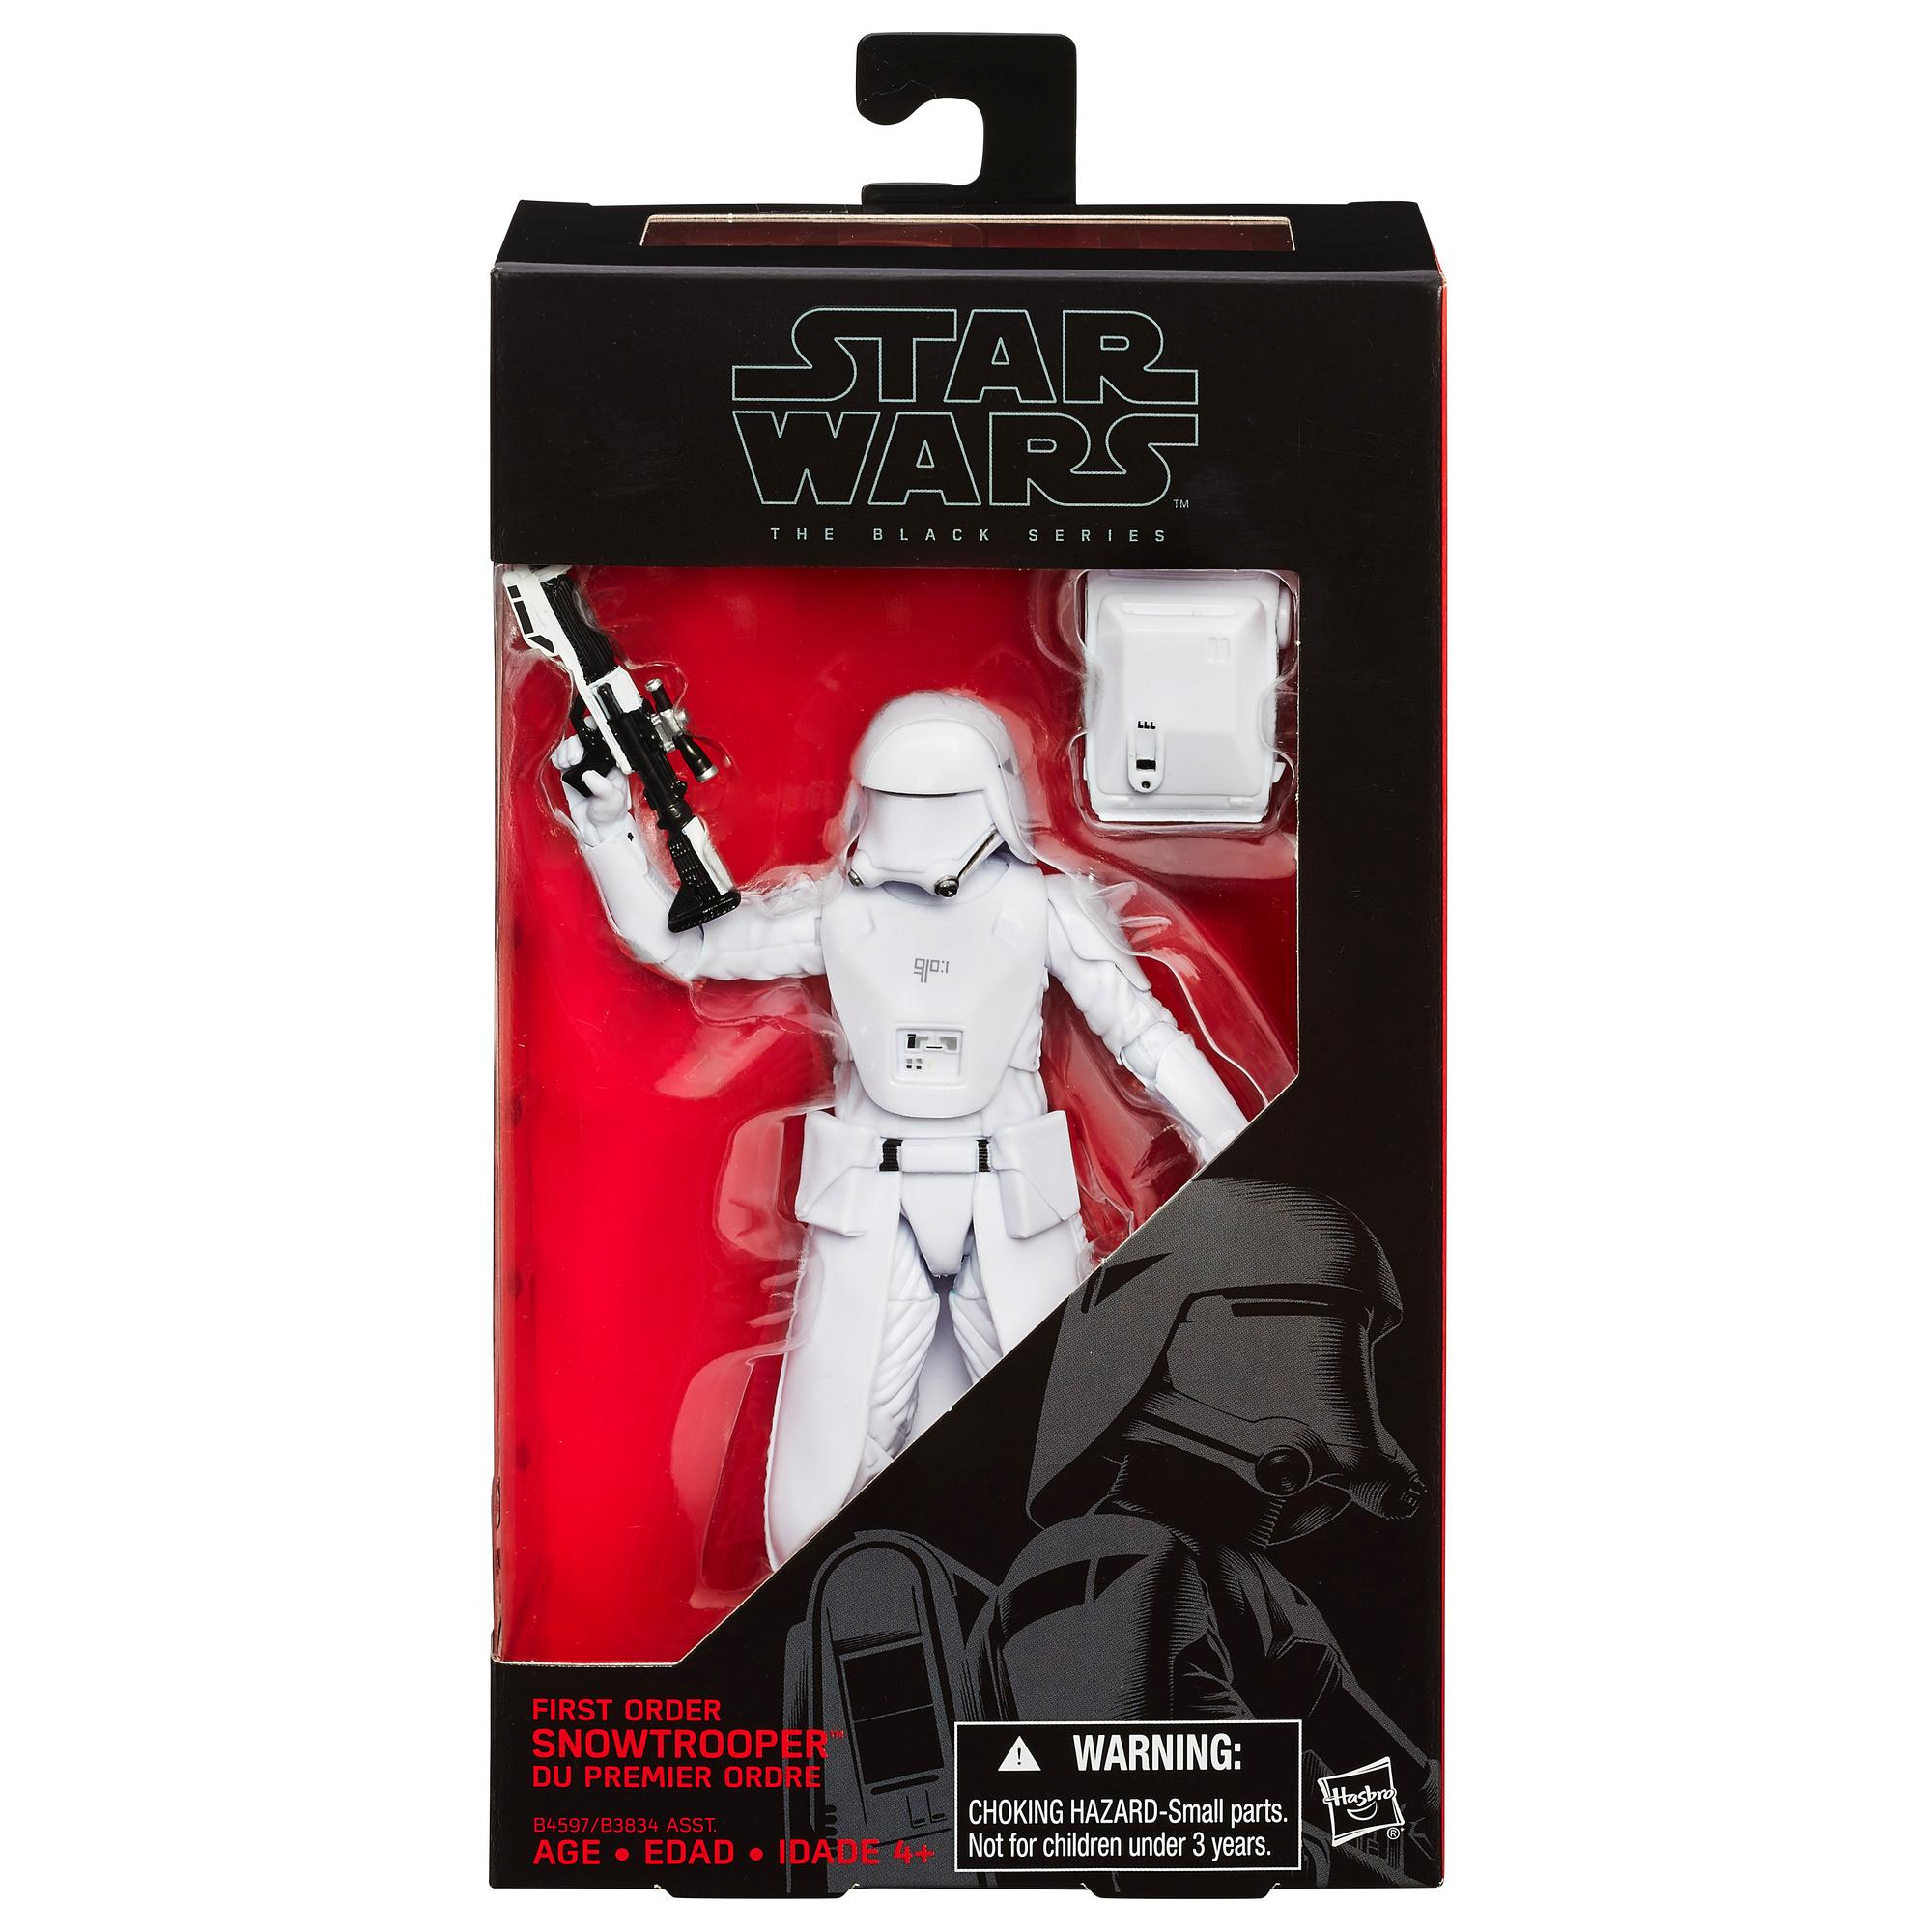 Star Wars – The Black Series Snowtrooper 15 cm